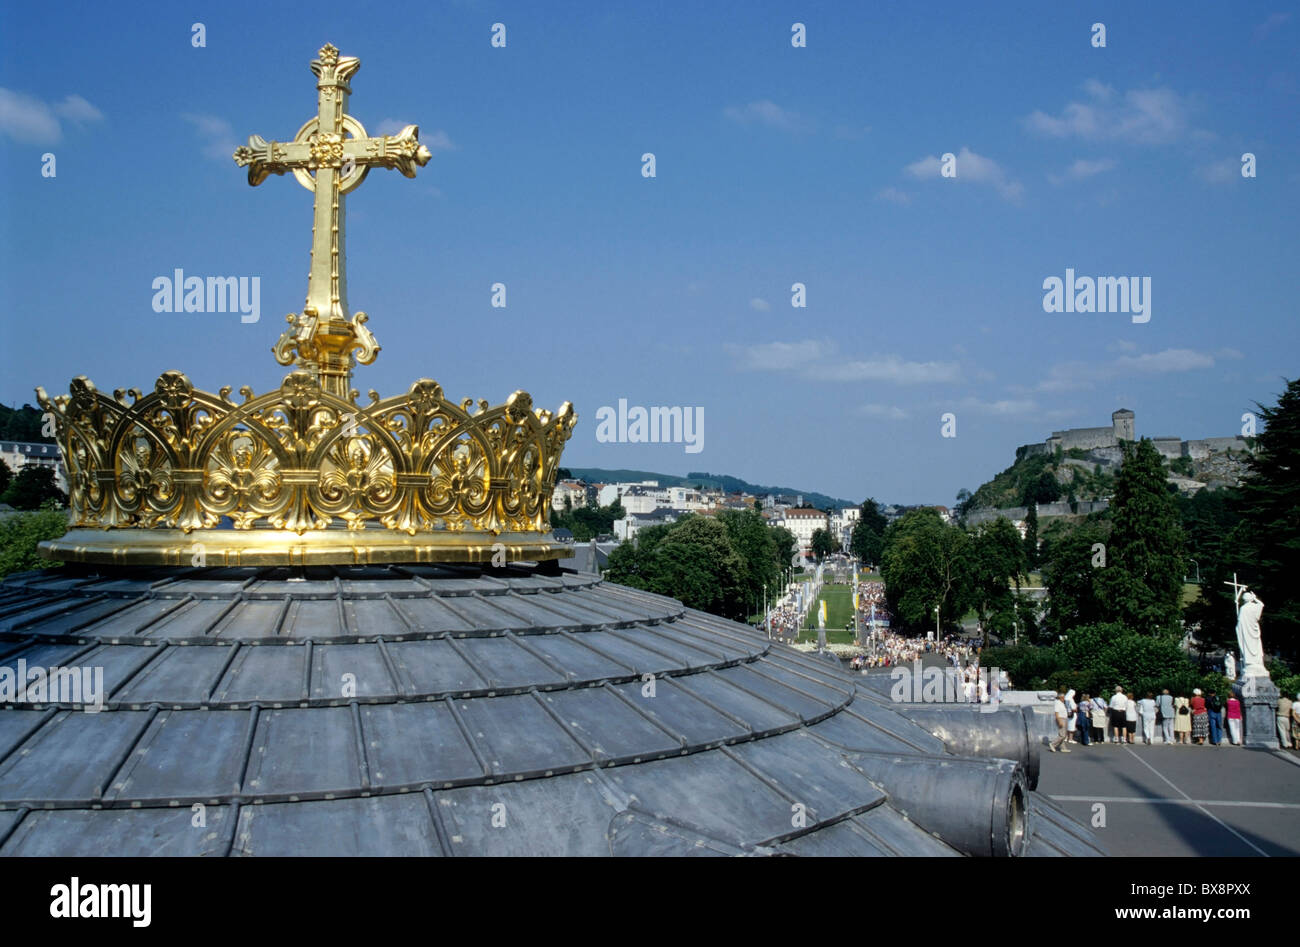 Gilded cross on top of the rooftop dome of the Rosary Basilica in Lourdes, France. Stock Photo